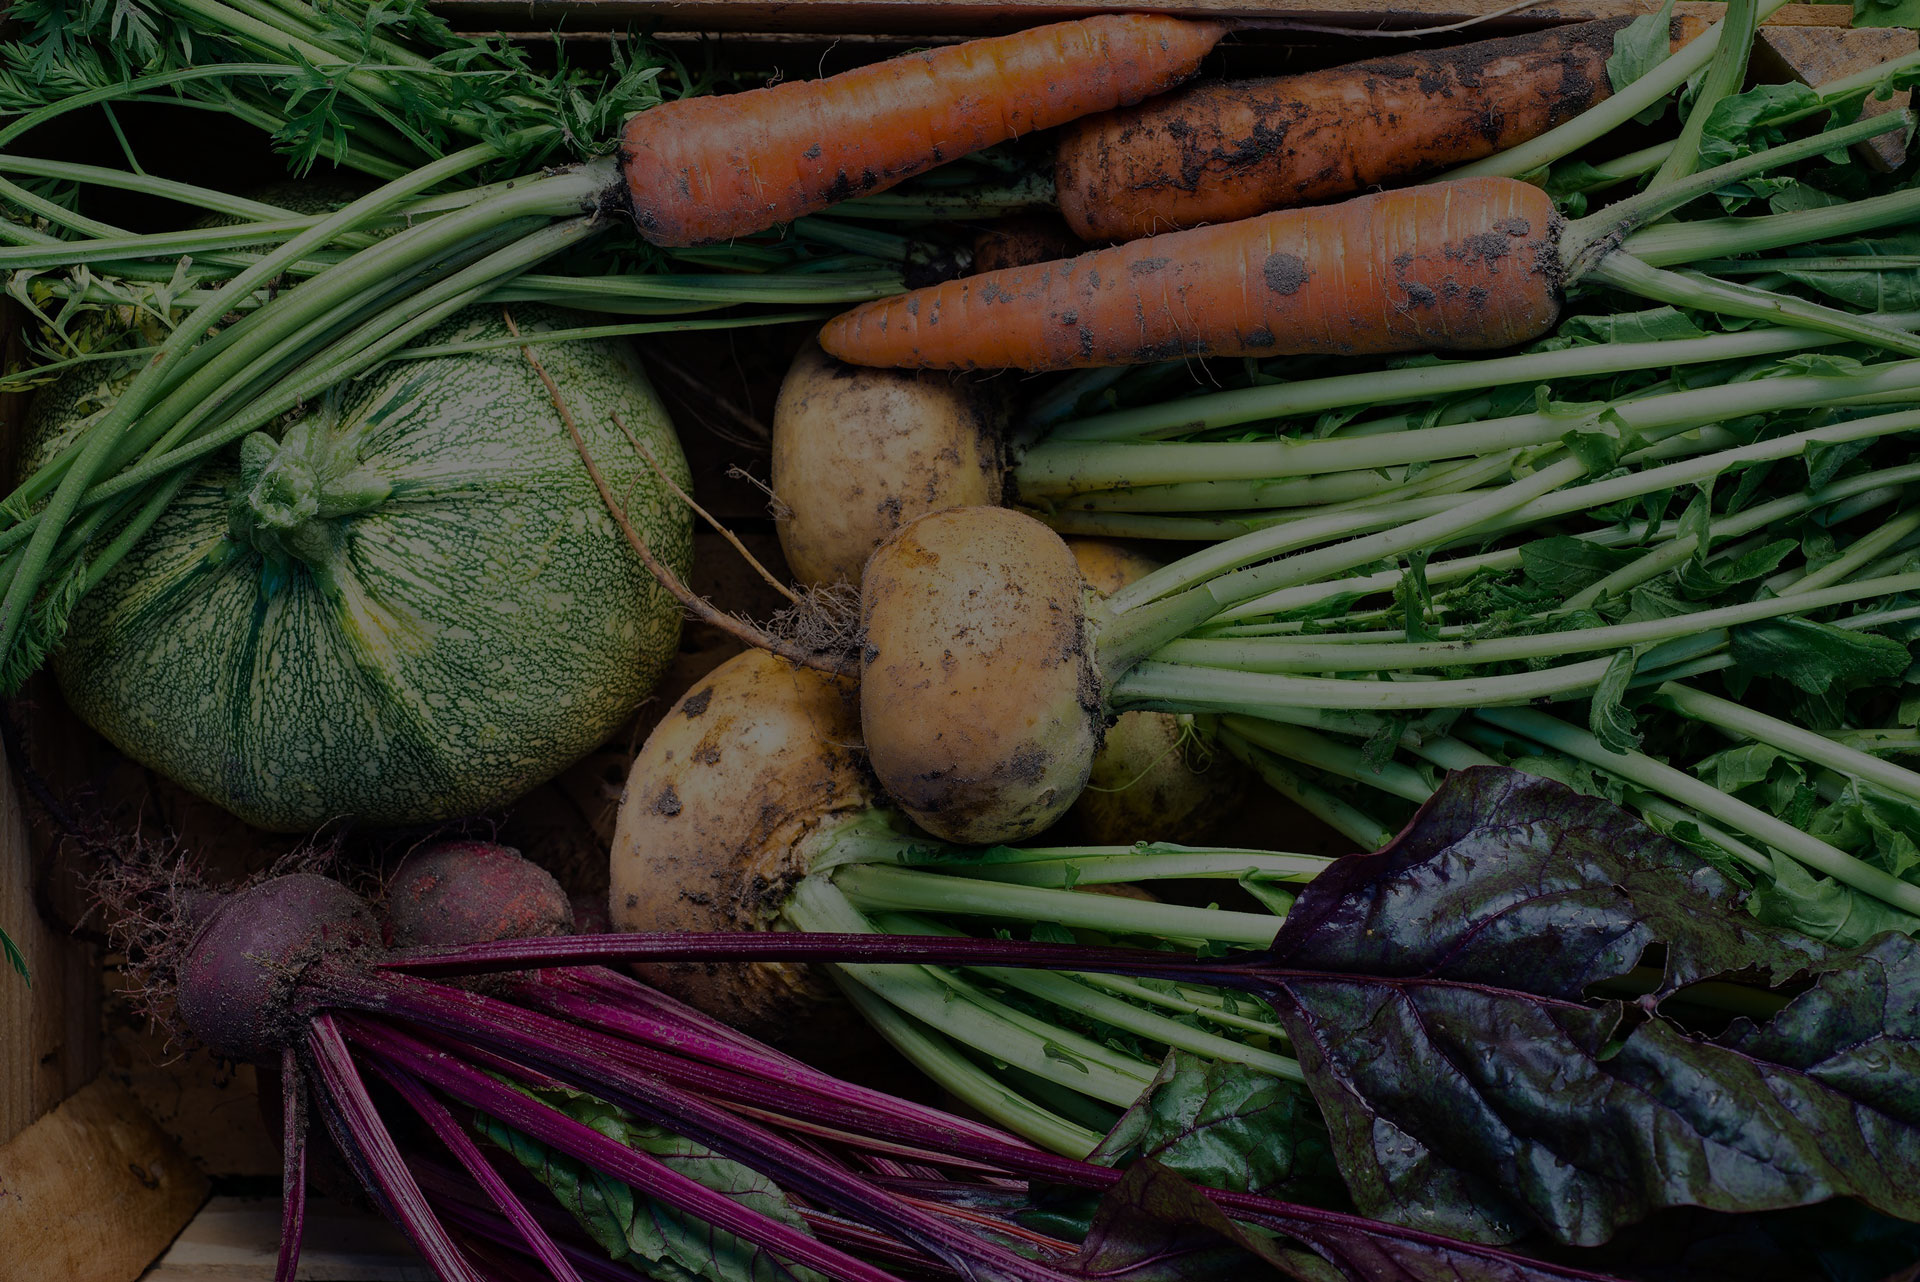 Closeup of freshly harvested vegetables (turnips, beetroots, carrots, round marrow), top view - Image